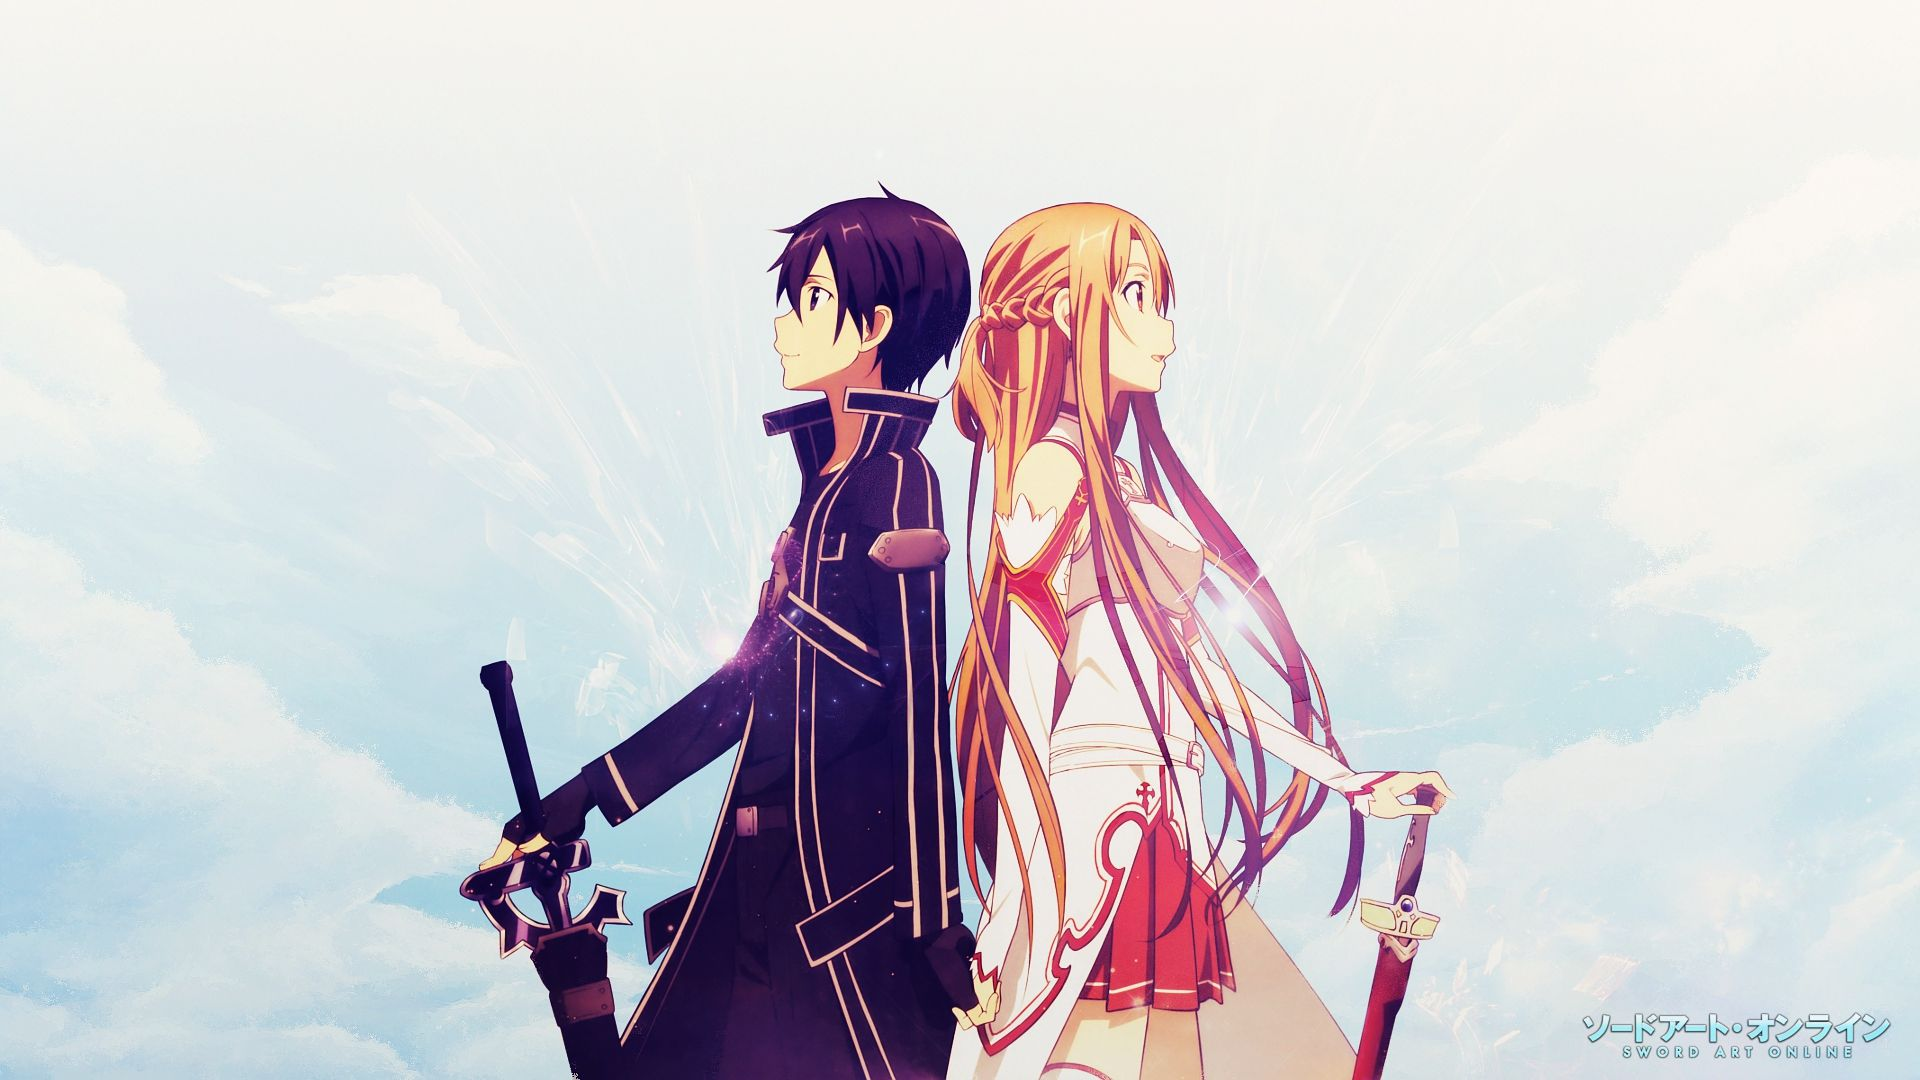 Sword Art Online Wallpapers High Quality As Wallpaper HD